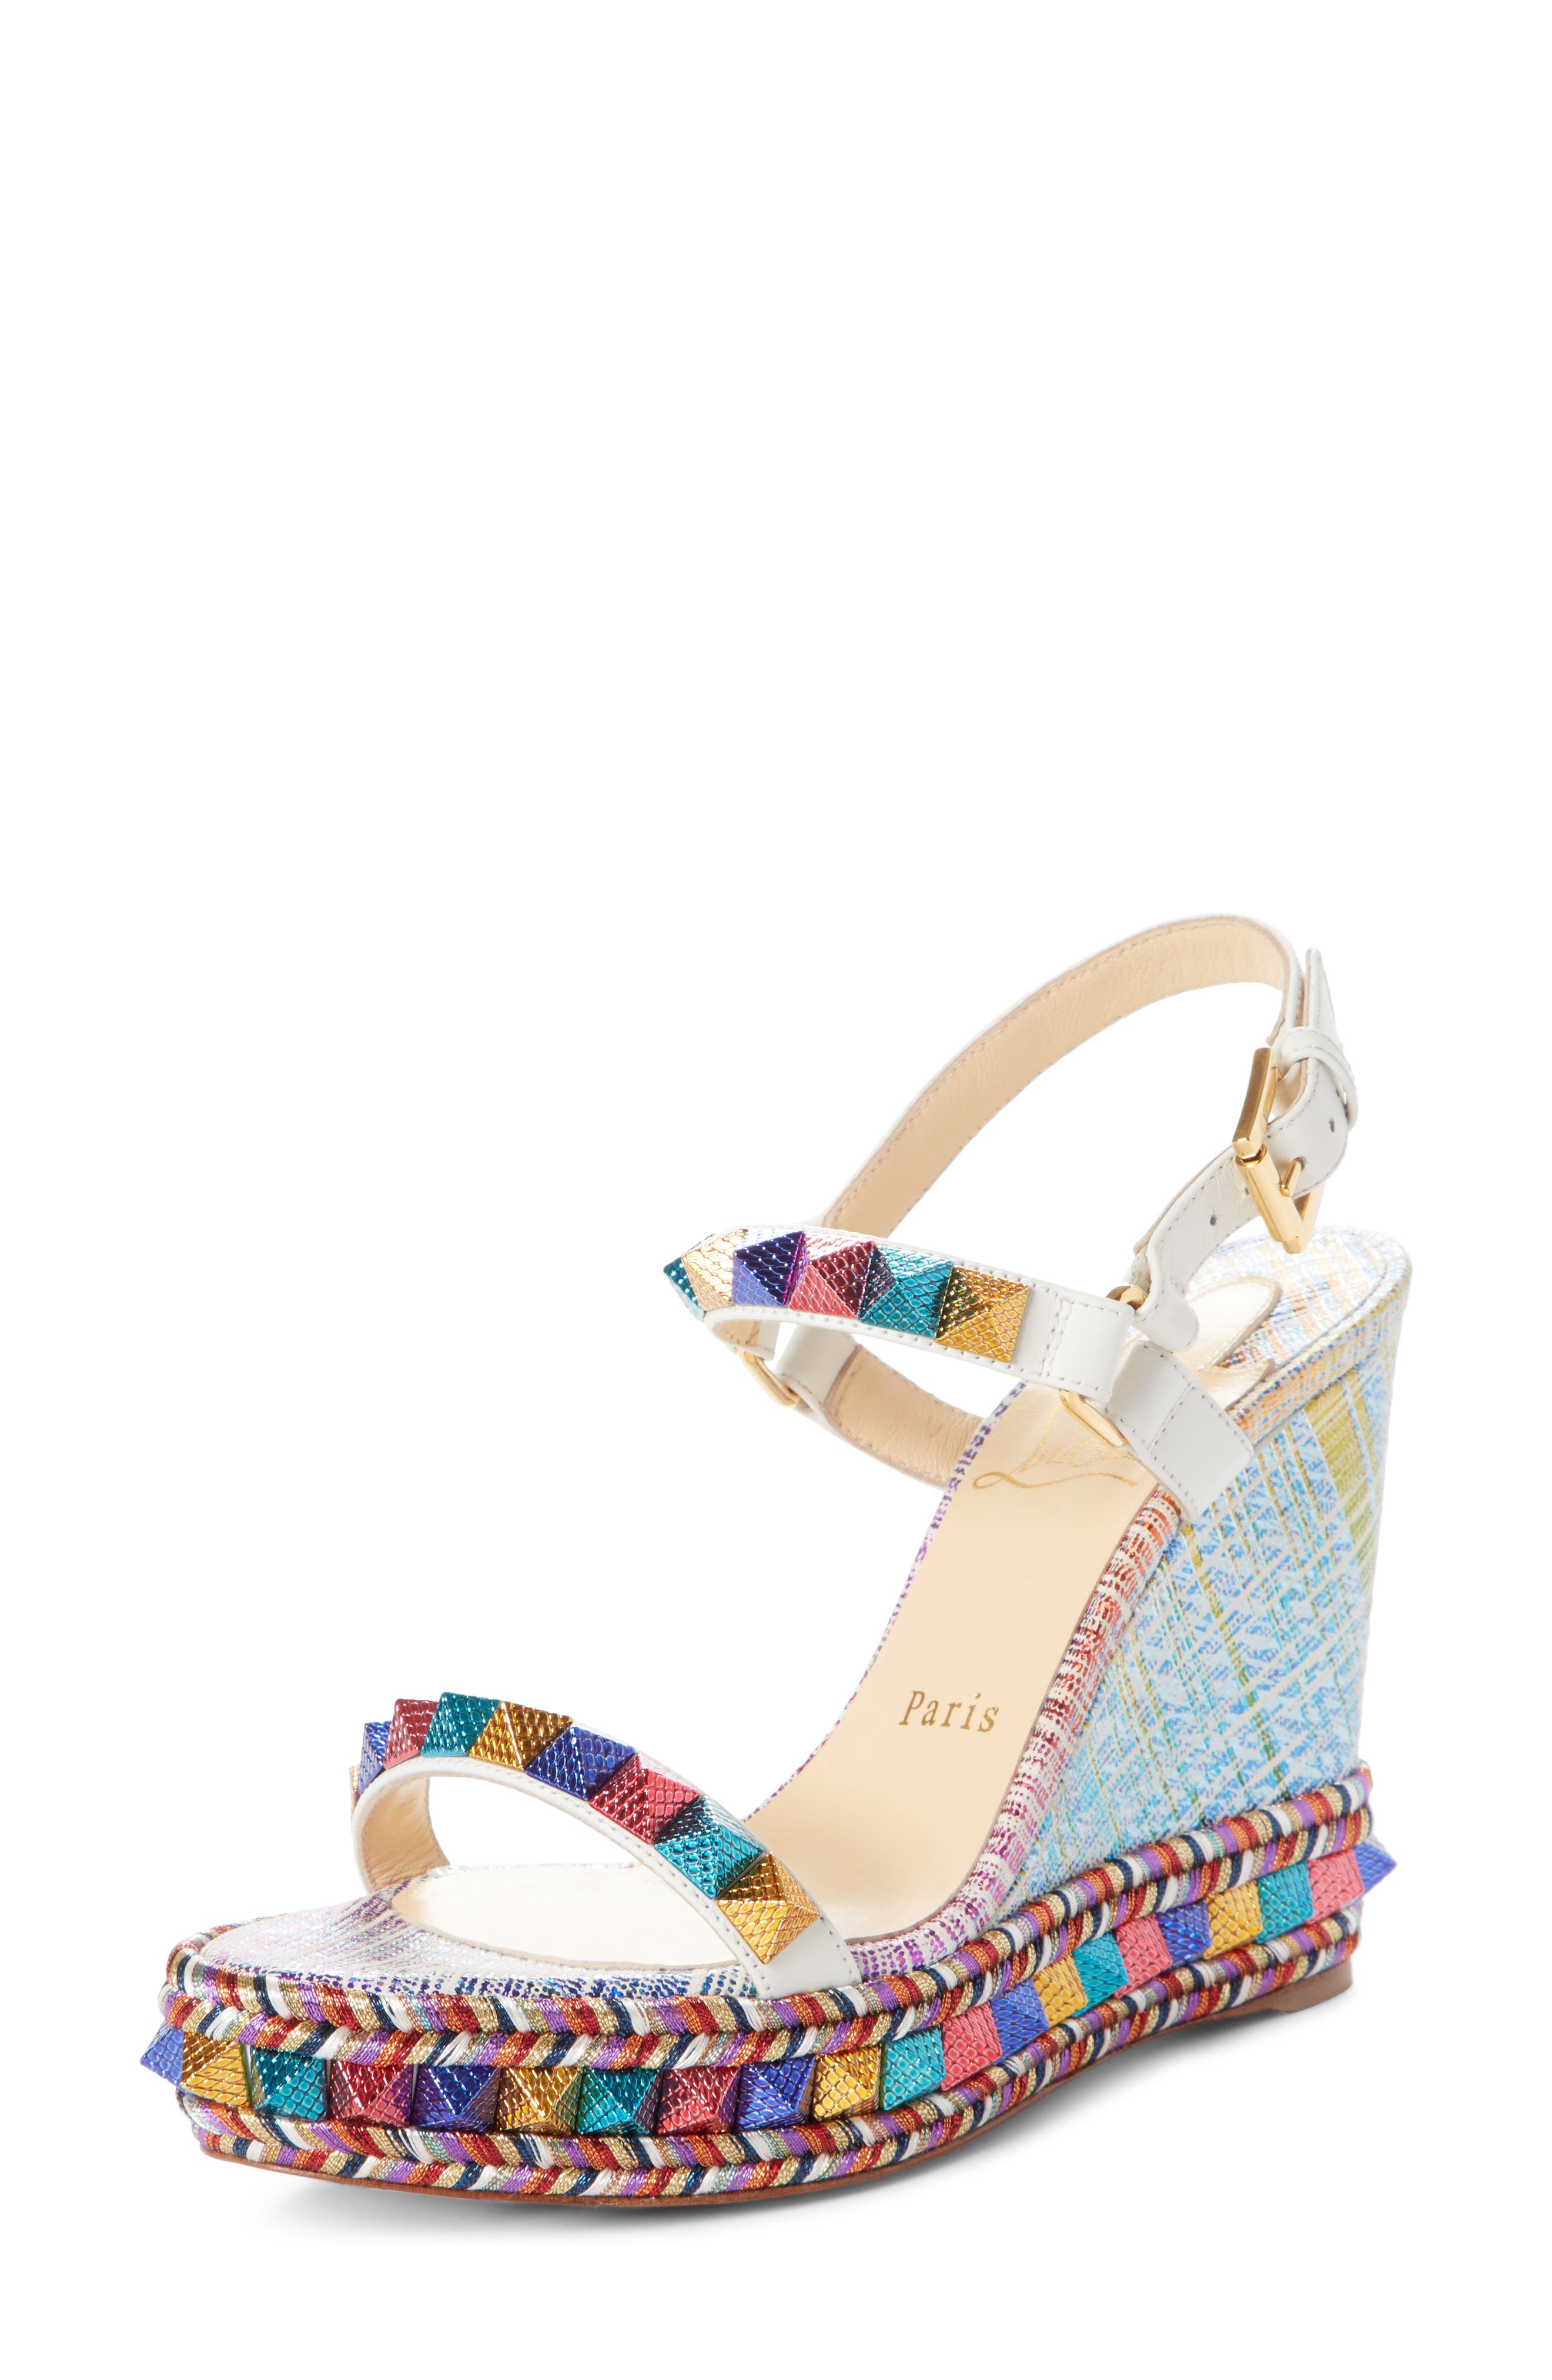 cheap exclusive Christian Louboutin Studded Platform Wedges discount excellent oBEBhAbfKP